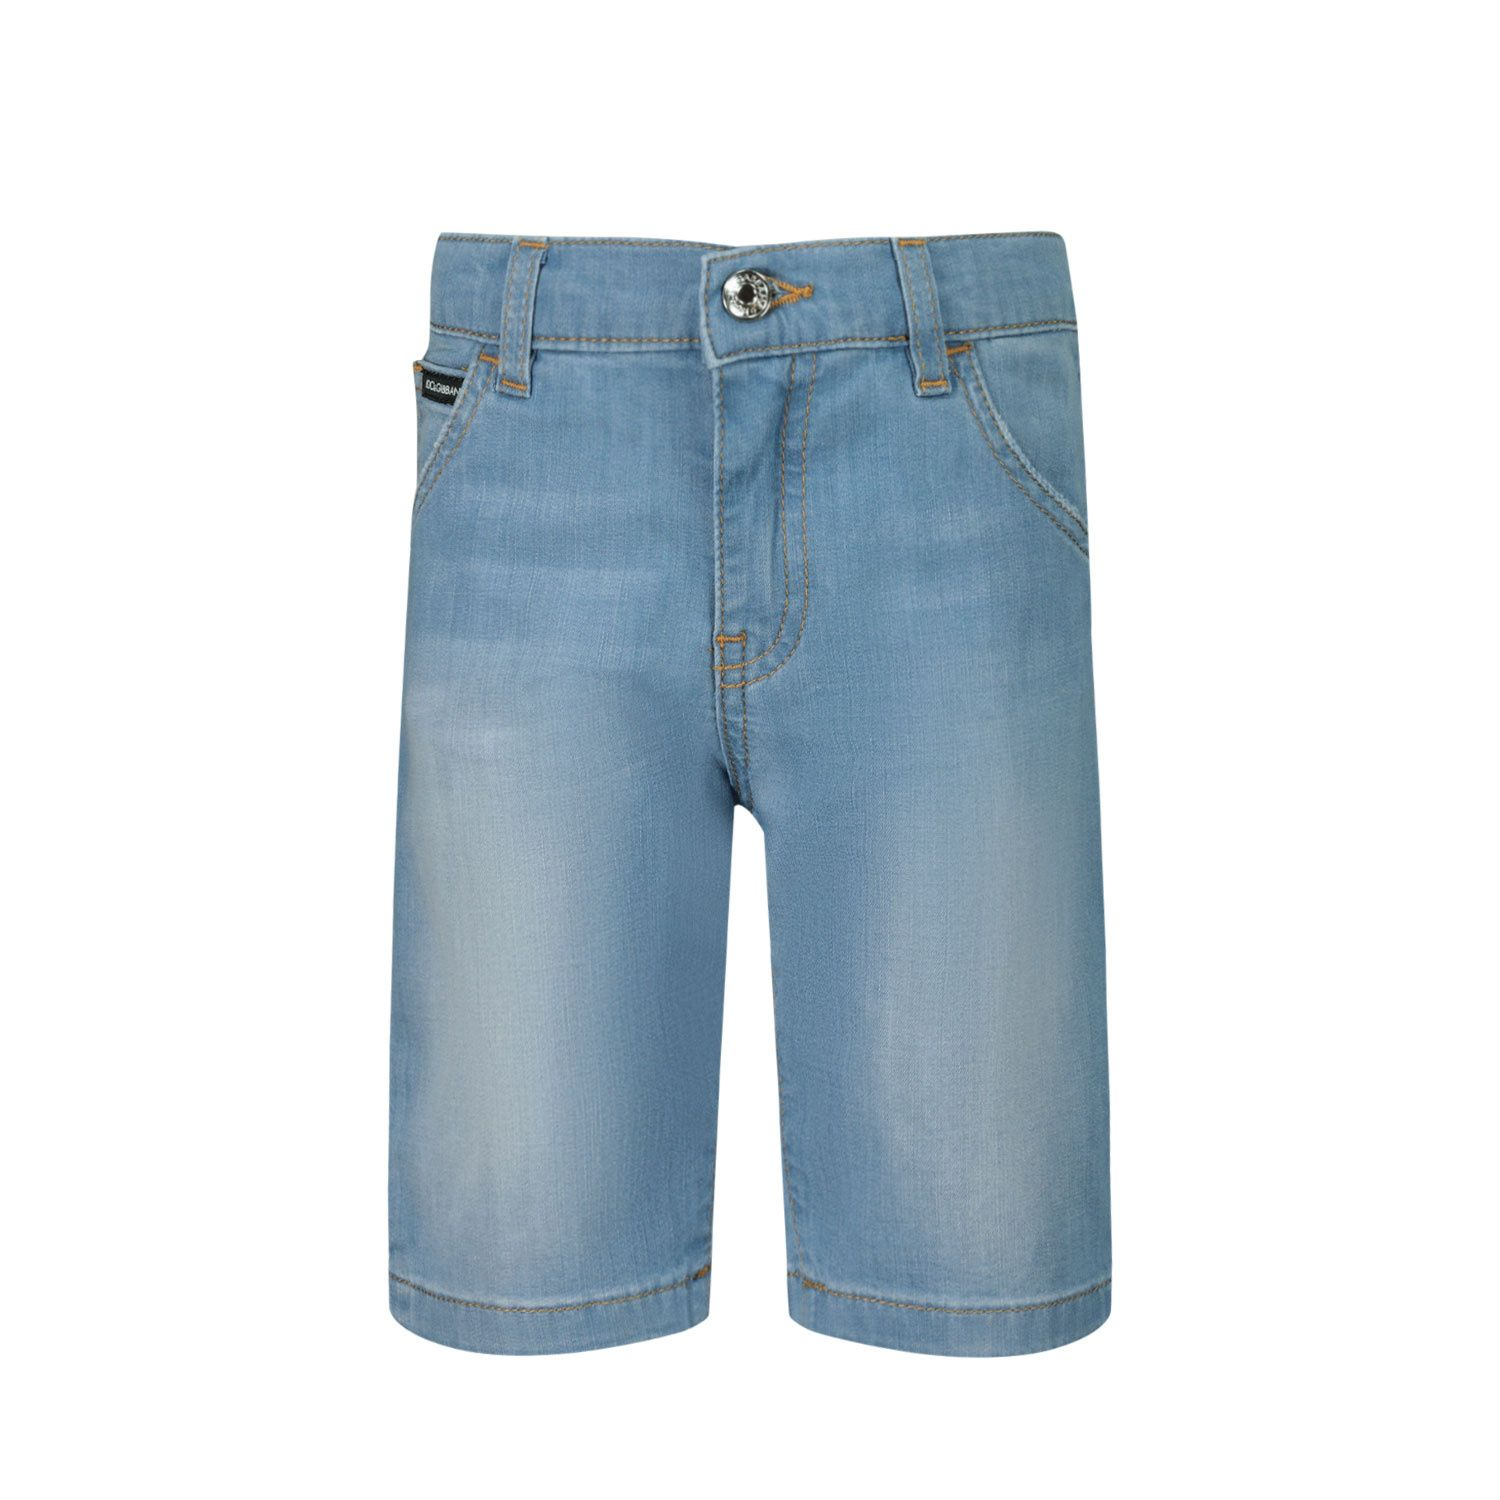 Picture of Dolce & Gabbana L12Q36 baby shorts jeans